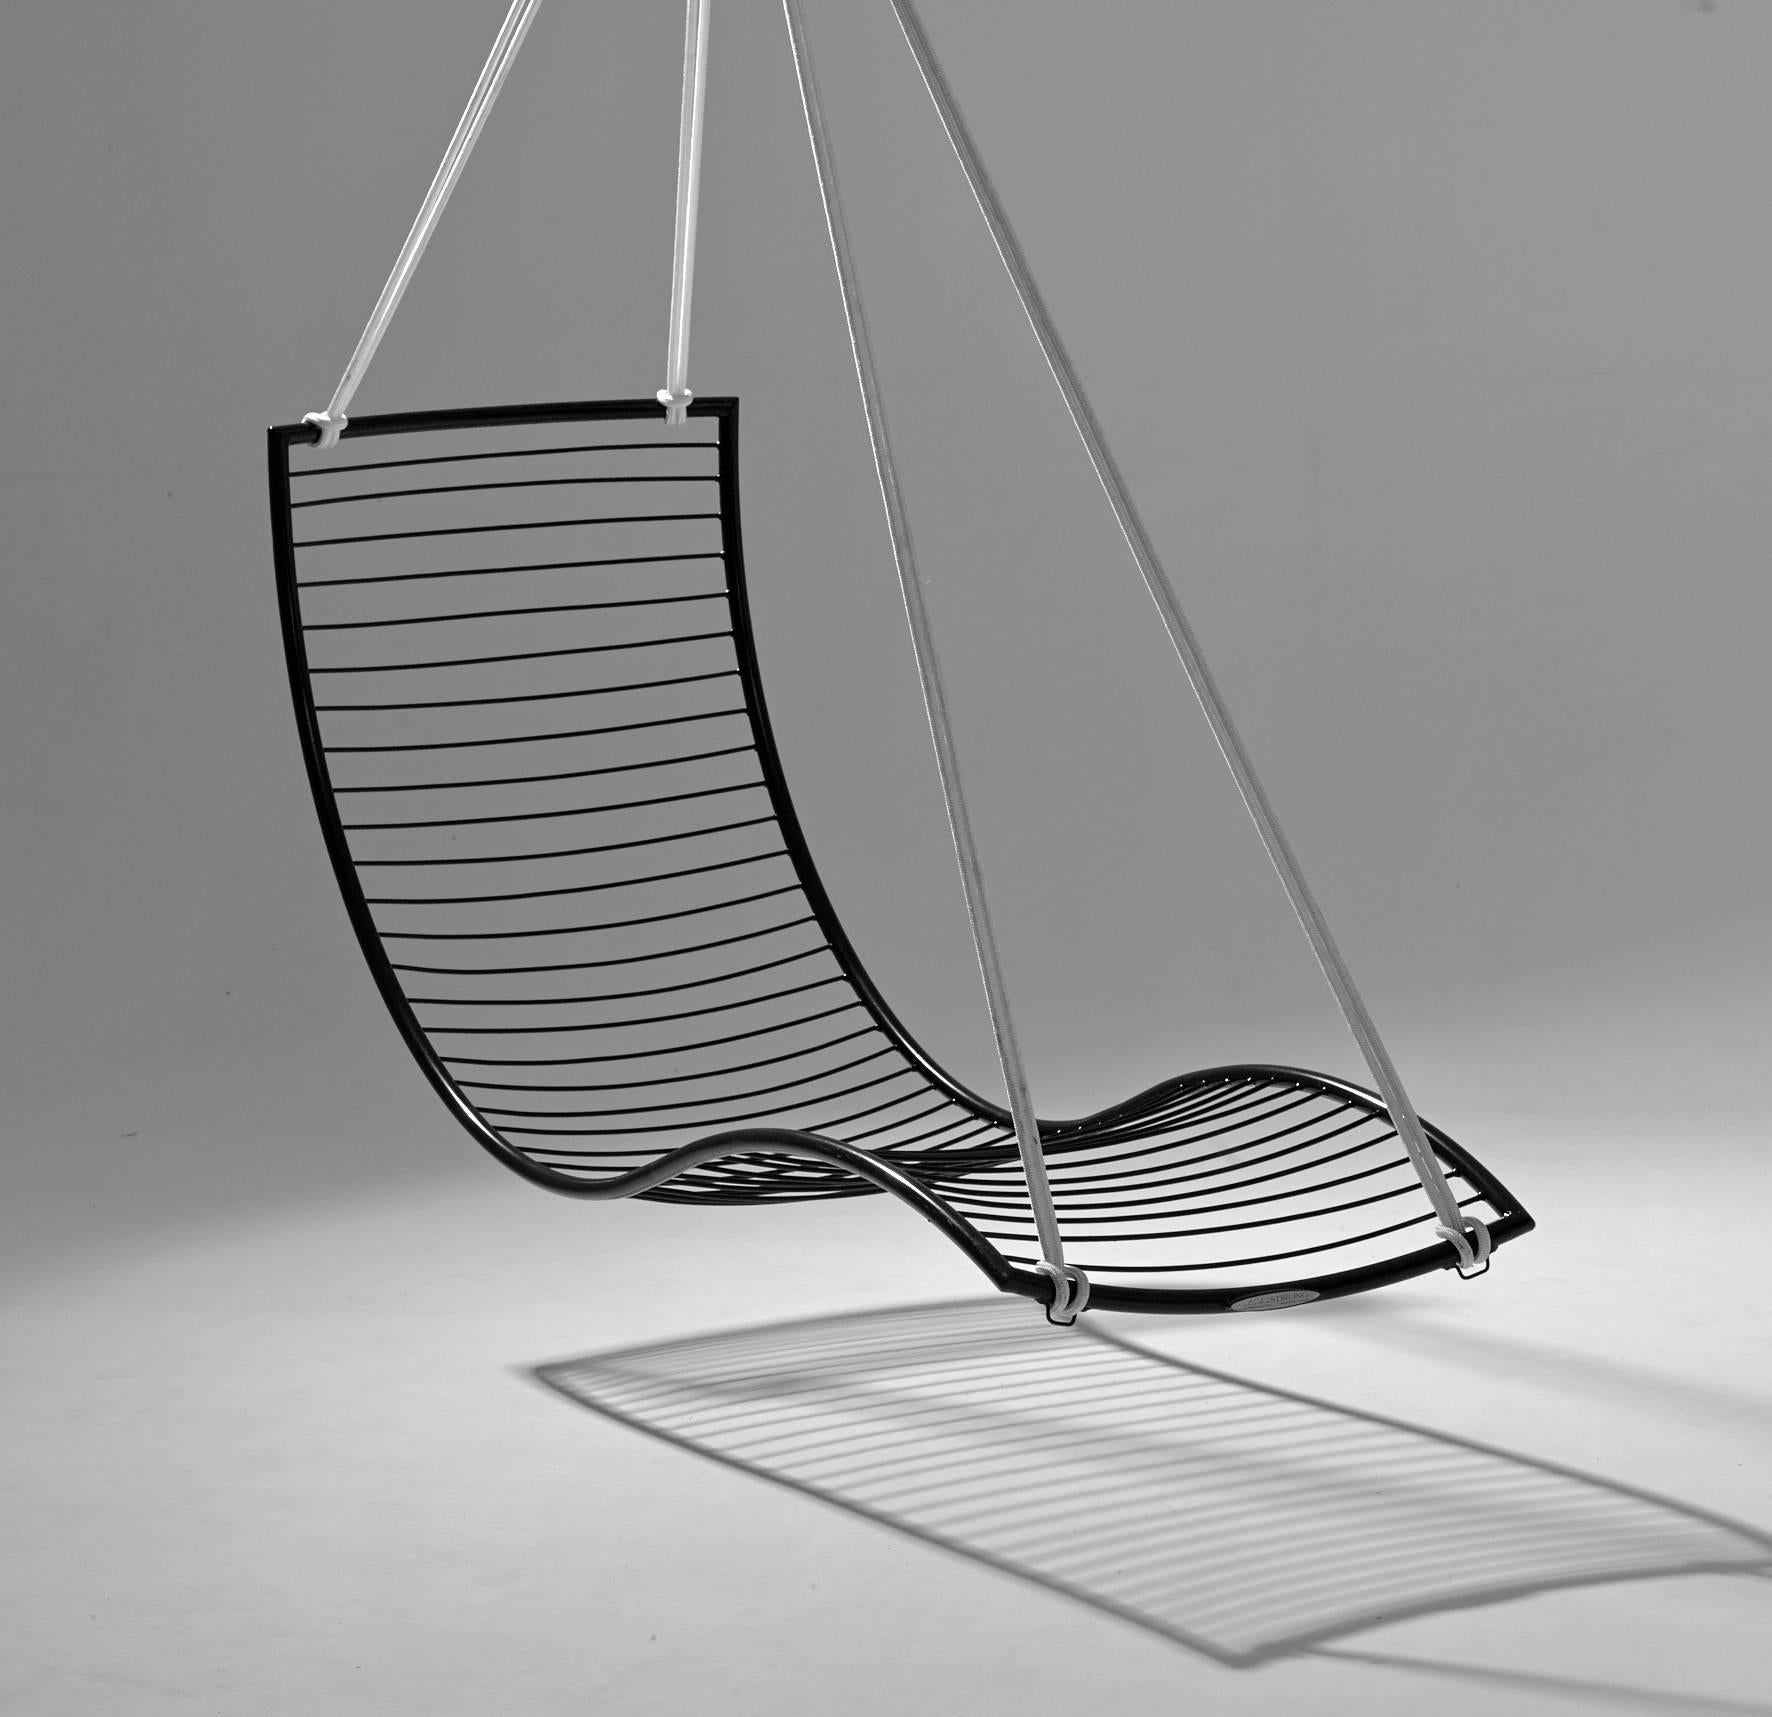 swing chair metal go anywhere harness curve hanging for sale at 1stdibs the chairs are fluid and organic they inspired by nature